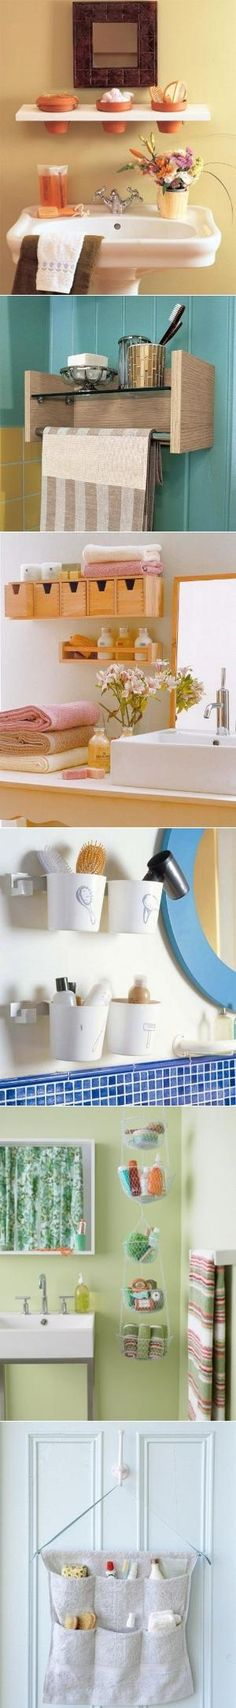 DIY Small Bathroom storage ideas by Stoeps